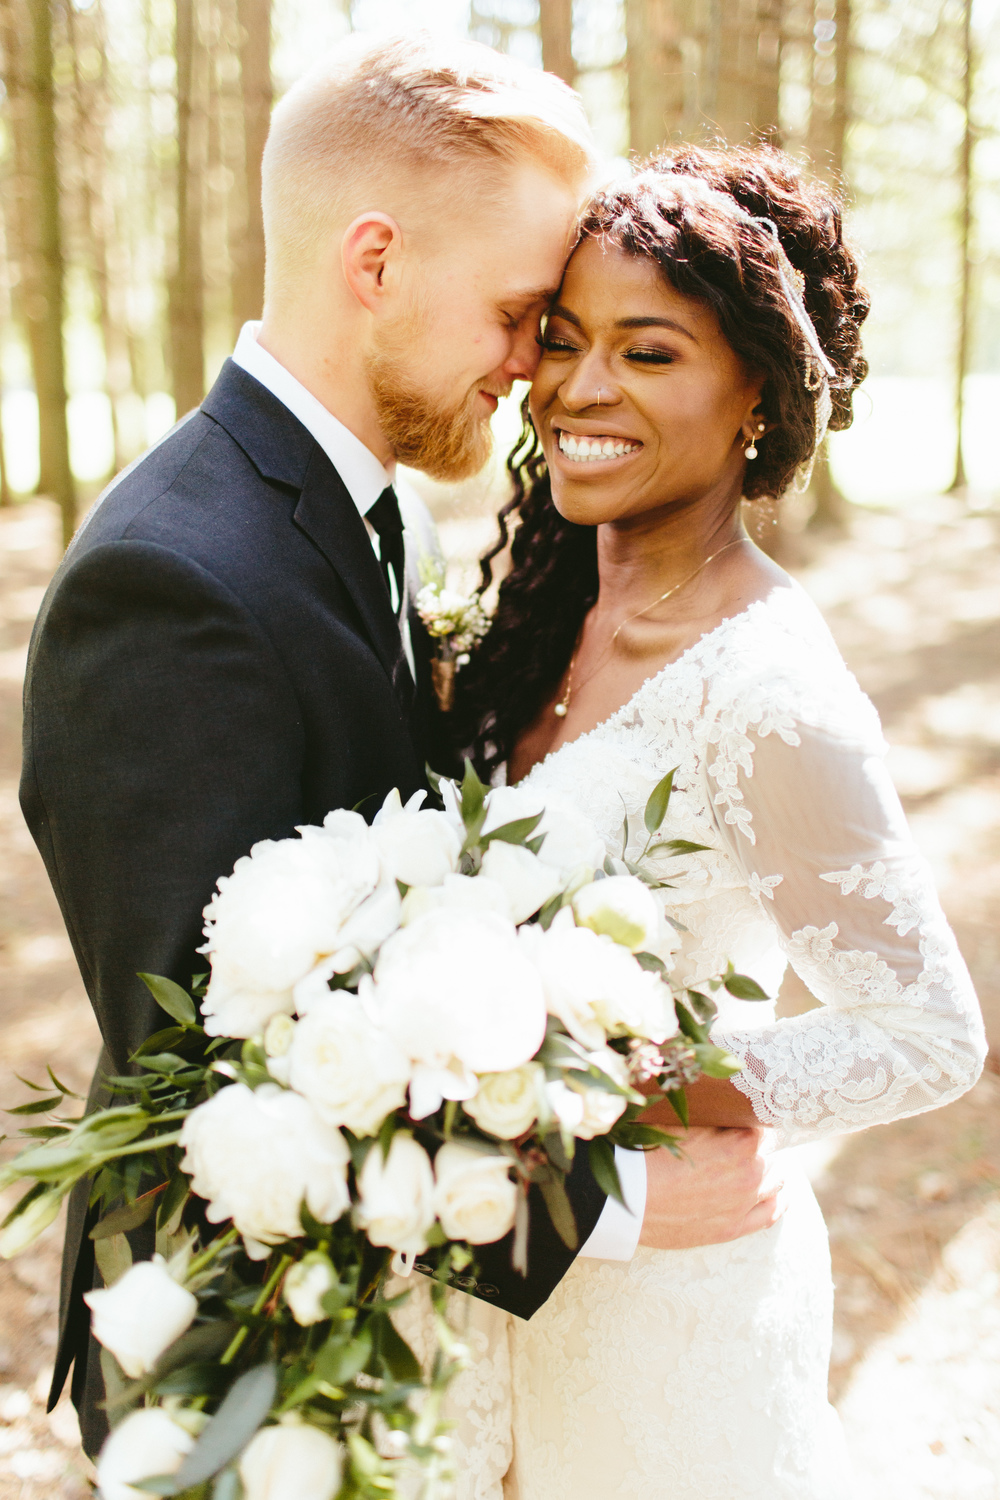 first look photos, interracial wedding photos, interracial wedding photographer, long sleeve lace dress,wedding hairstyles for black women,mixed wedding, interracial wedding, black bride, cultural wedding, brooklyn wedding photographer, brooklyn new york photographer, destination wedding photographer, photojournalistic brooklyn wedding photographer, philadelphia wedding photographer, photojournalistic philadelphia wedding photographer, unique wedding photos, untraditional wedding ideas, backyard wedding ideas, wedding in the forest,forest wedding,outdoor ceremony